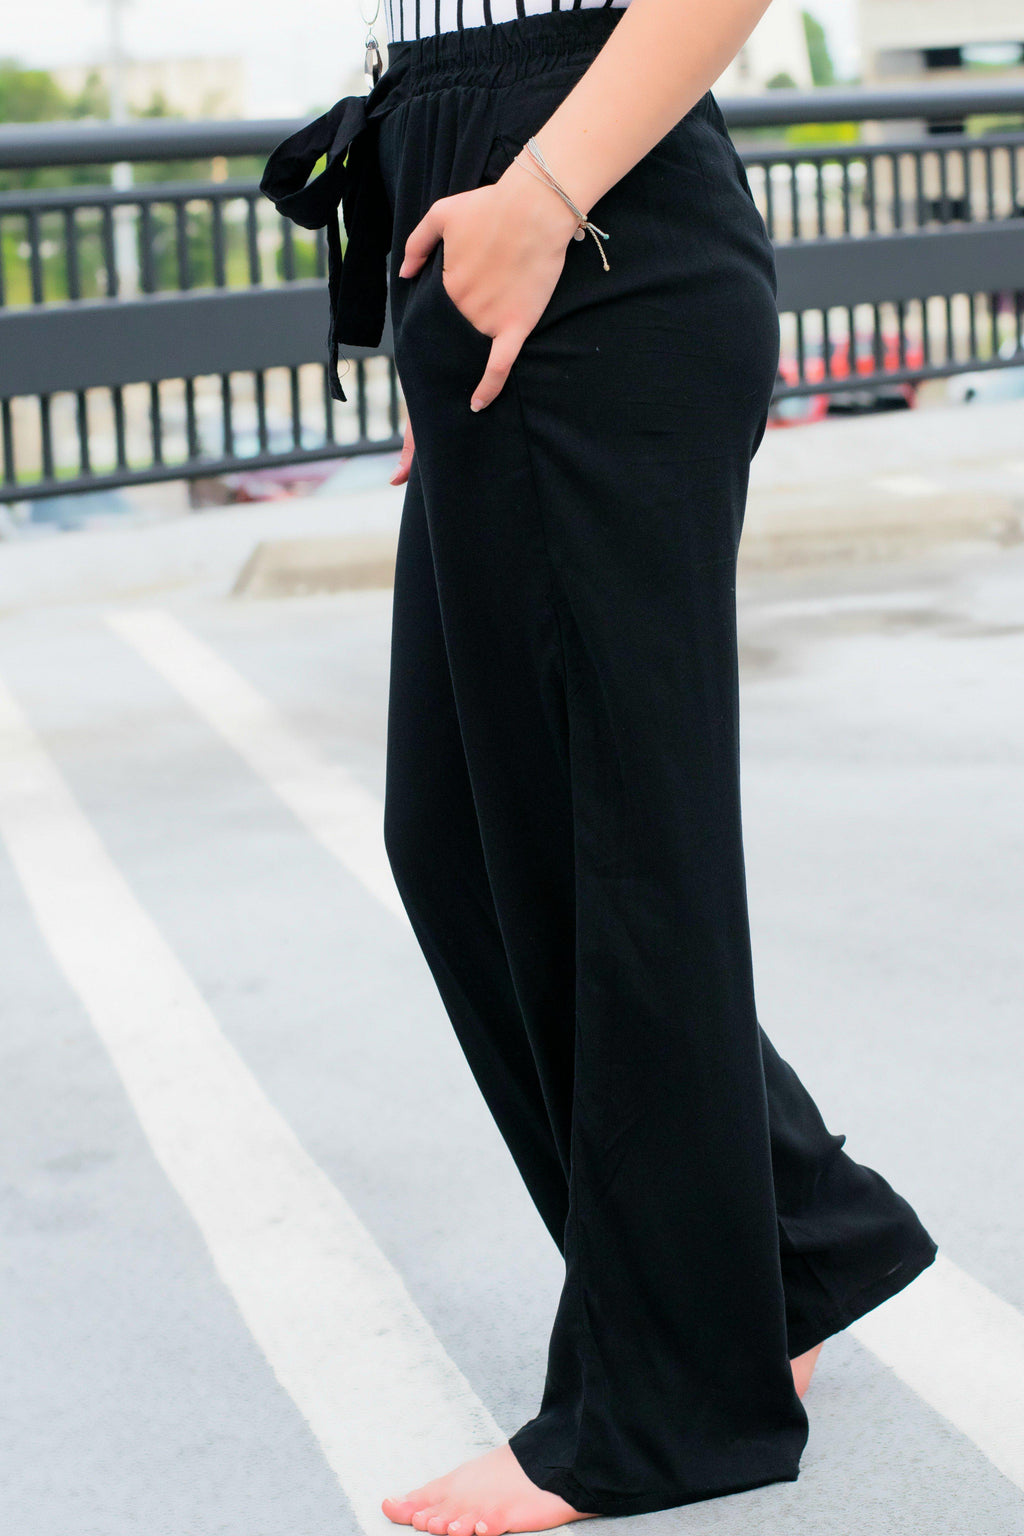 Down To Business Pants - 512 Boutique